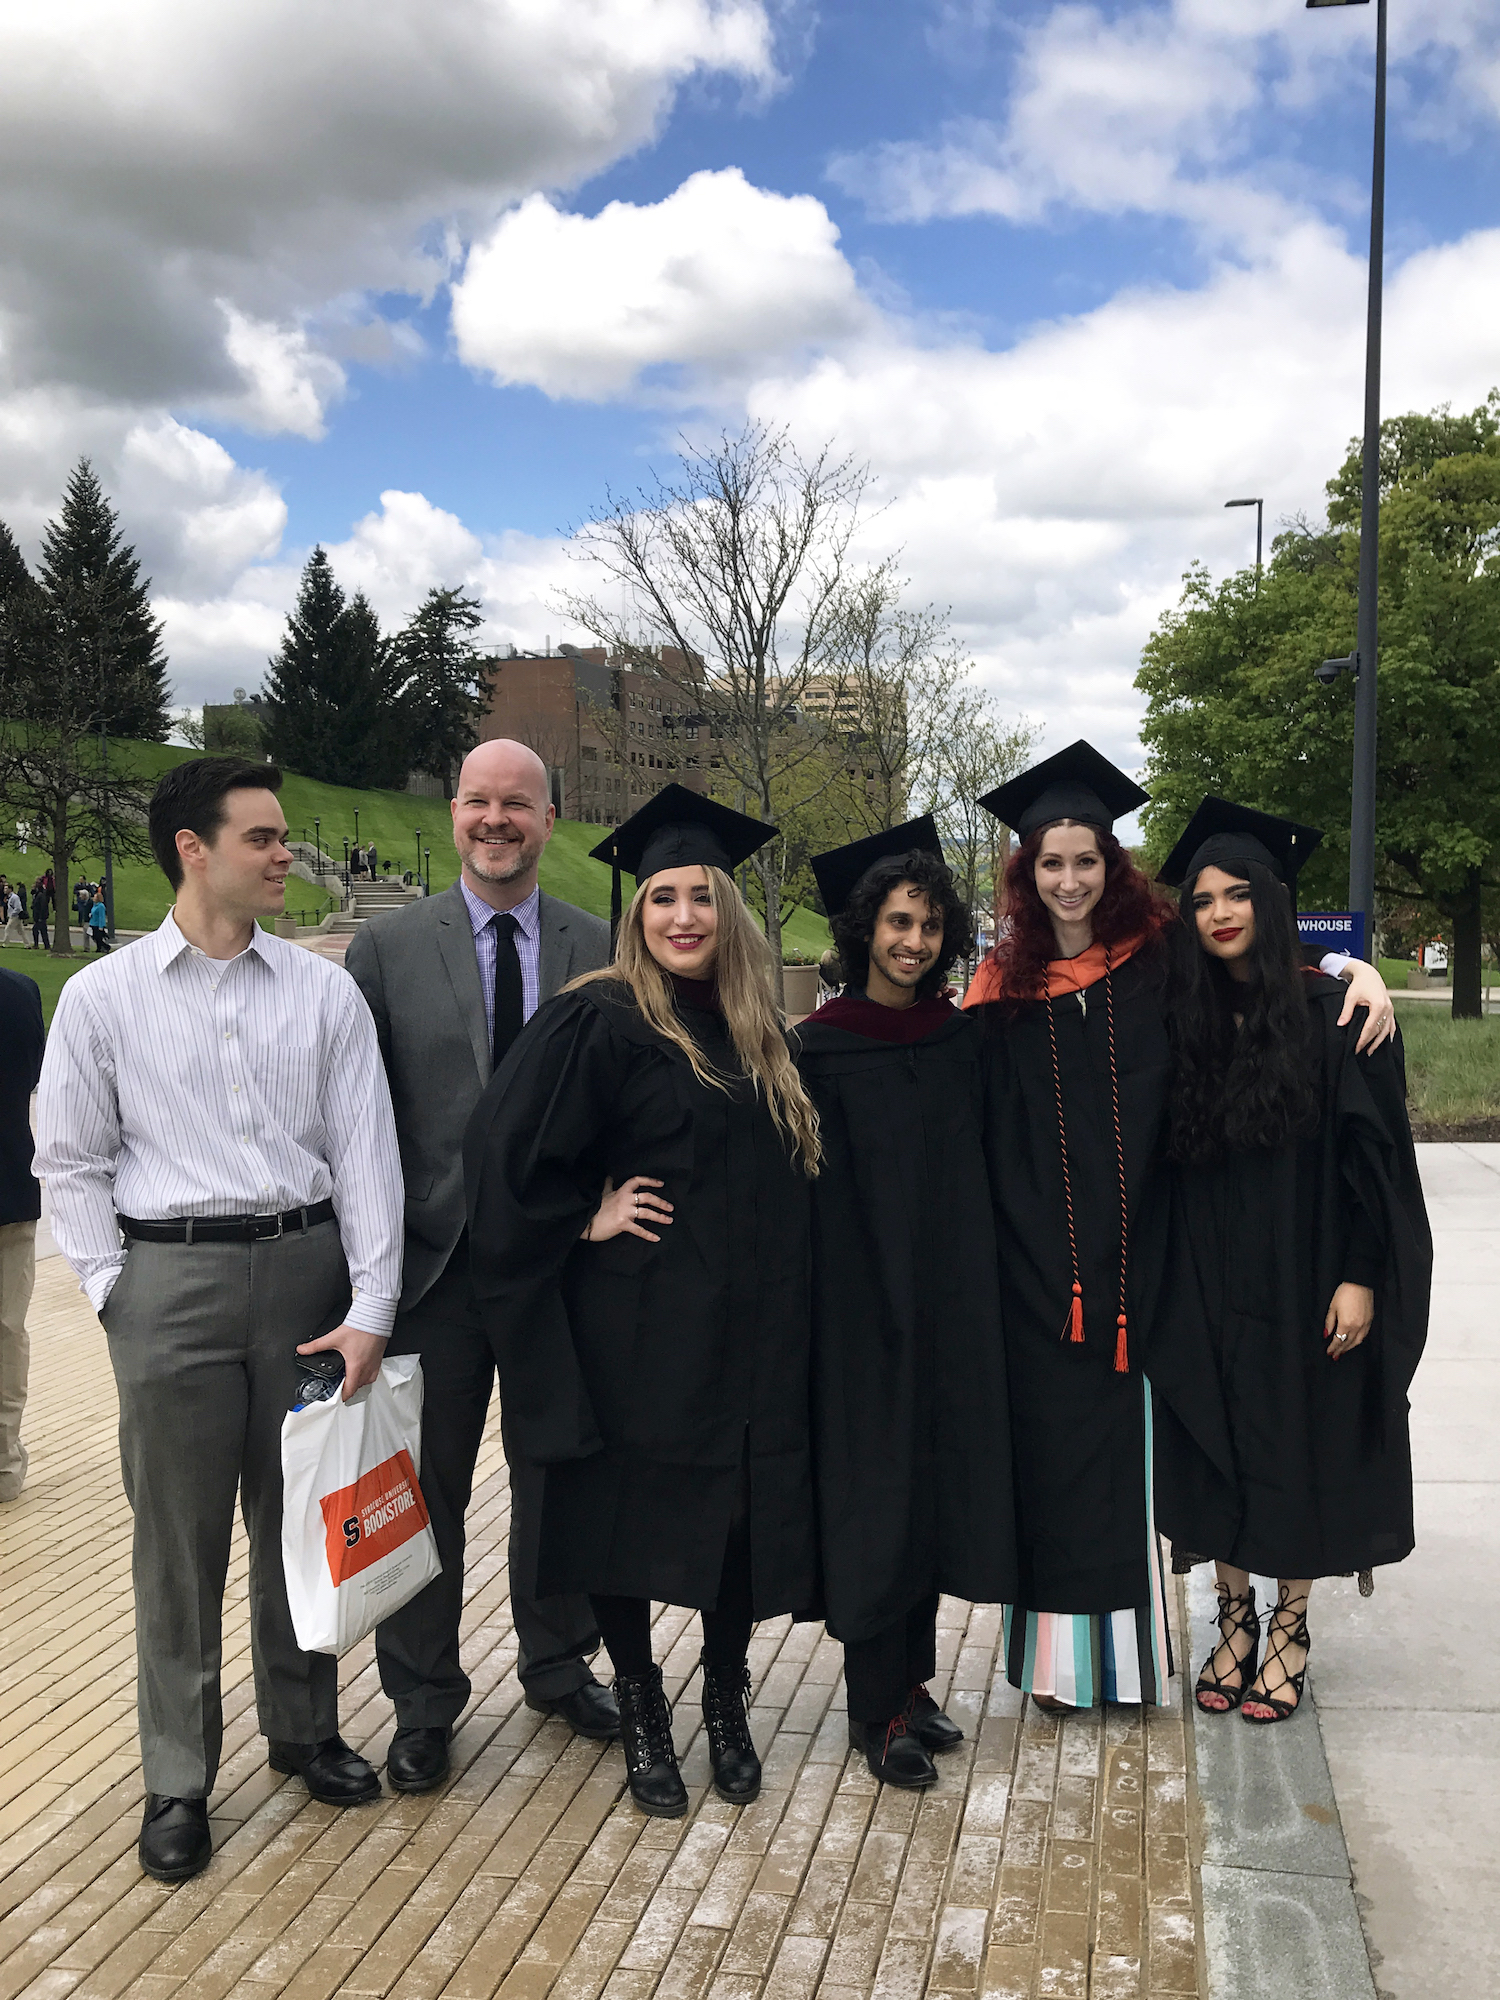 Syracuse University Masters student Geena Matuson with students from Goldring Arts Journalism cohort Michael Zawisza, Mary Walrath, Lyle Michael and Christina Nagel, with Director Eric Grode, on graduation day, May 2019.